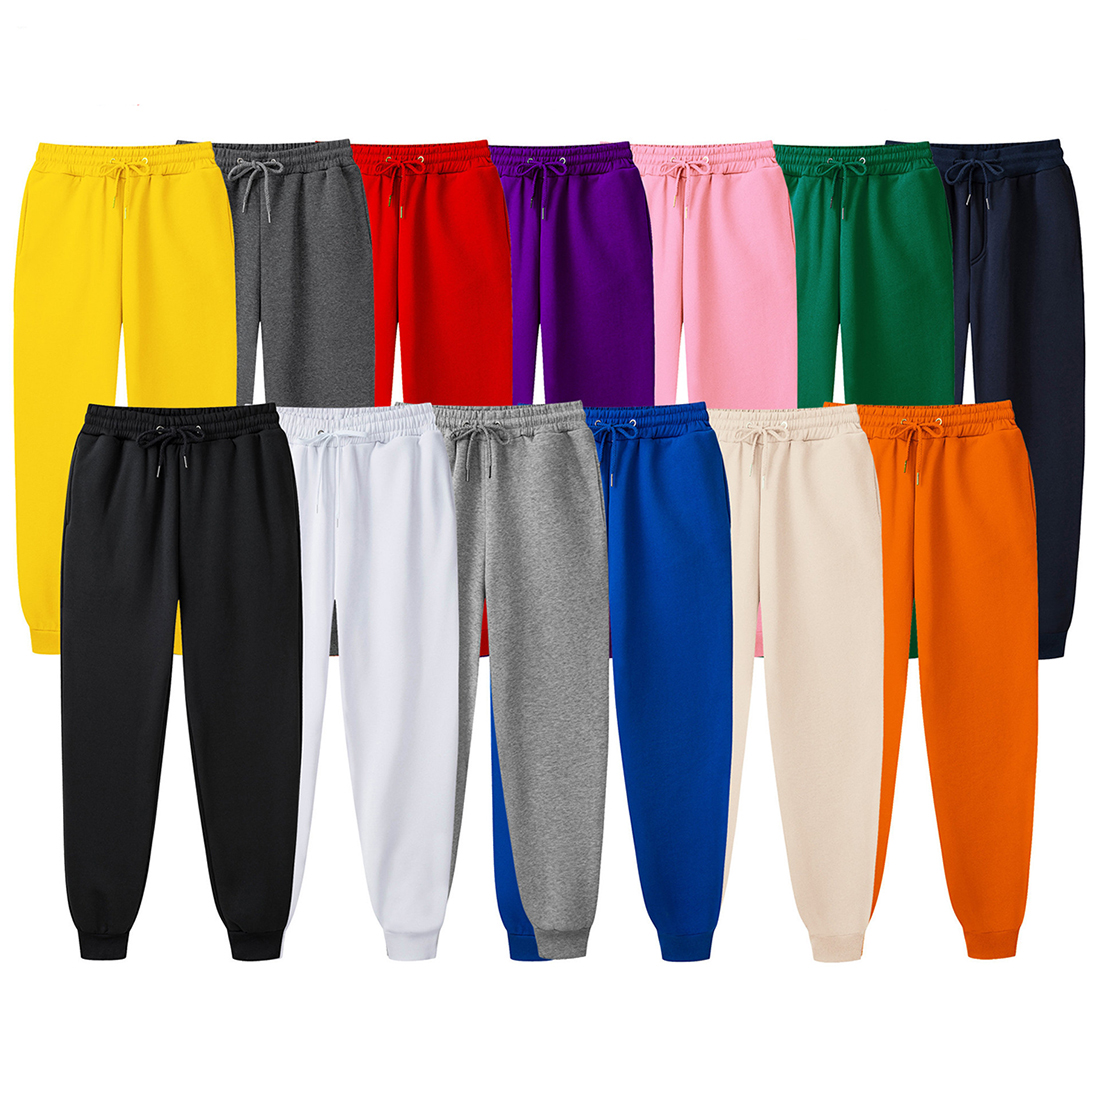 2020 New Brand Male Fleece Warm Trousers Casual Pants Mens Fitness Sport Workout Regular Solid Sweatpants